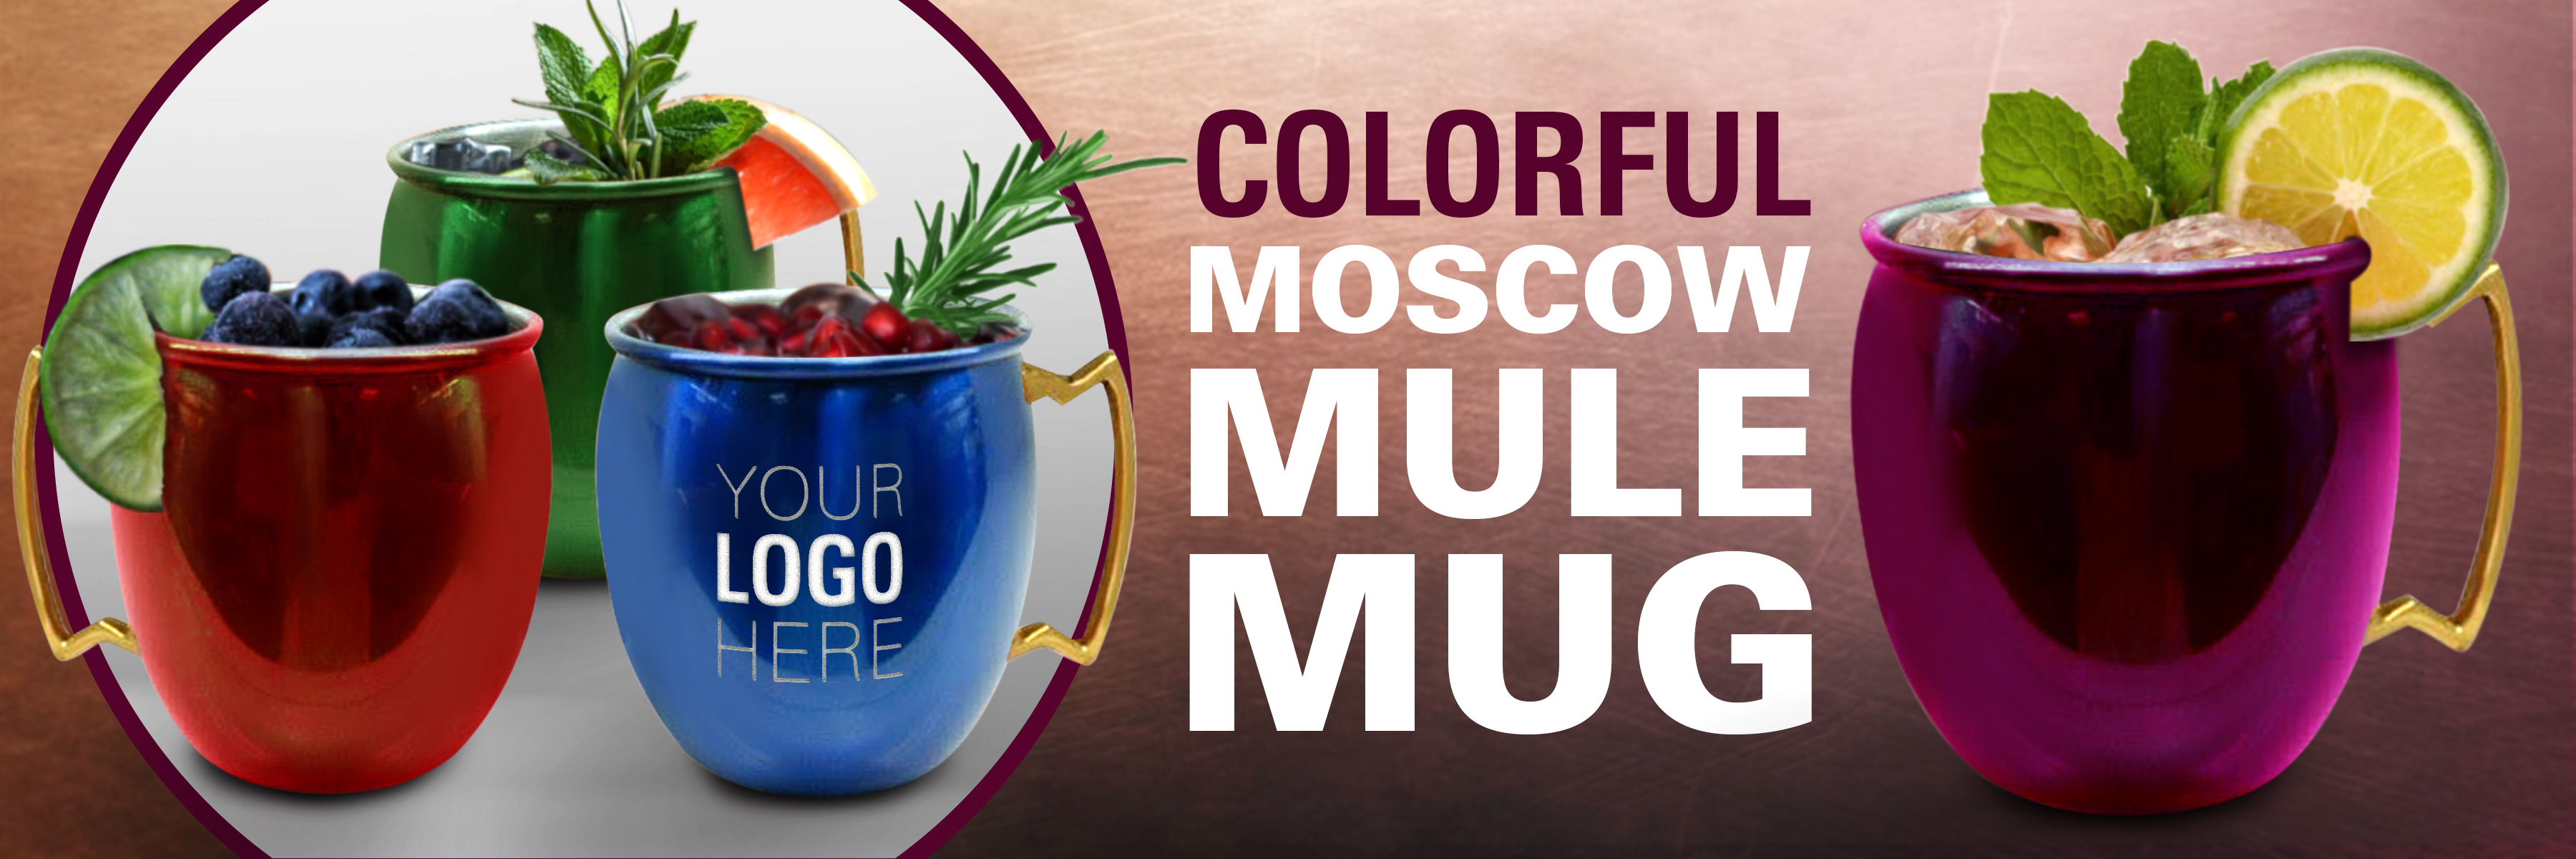 Colorful Moscow Mule Mug Banner